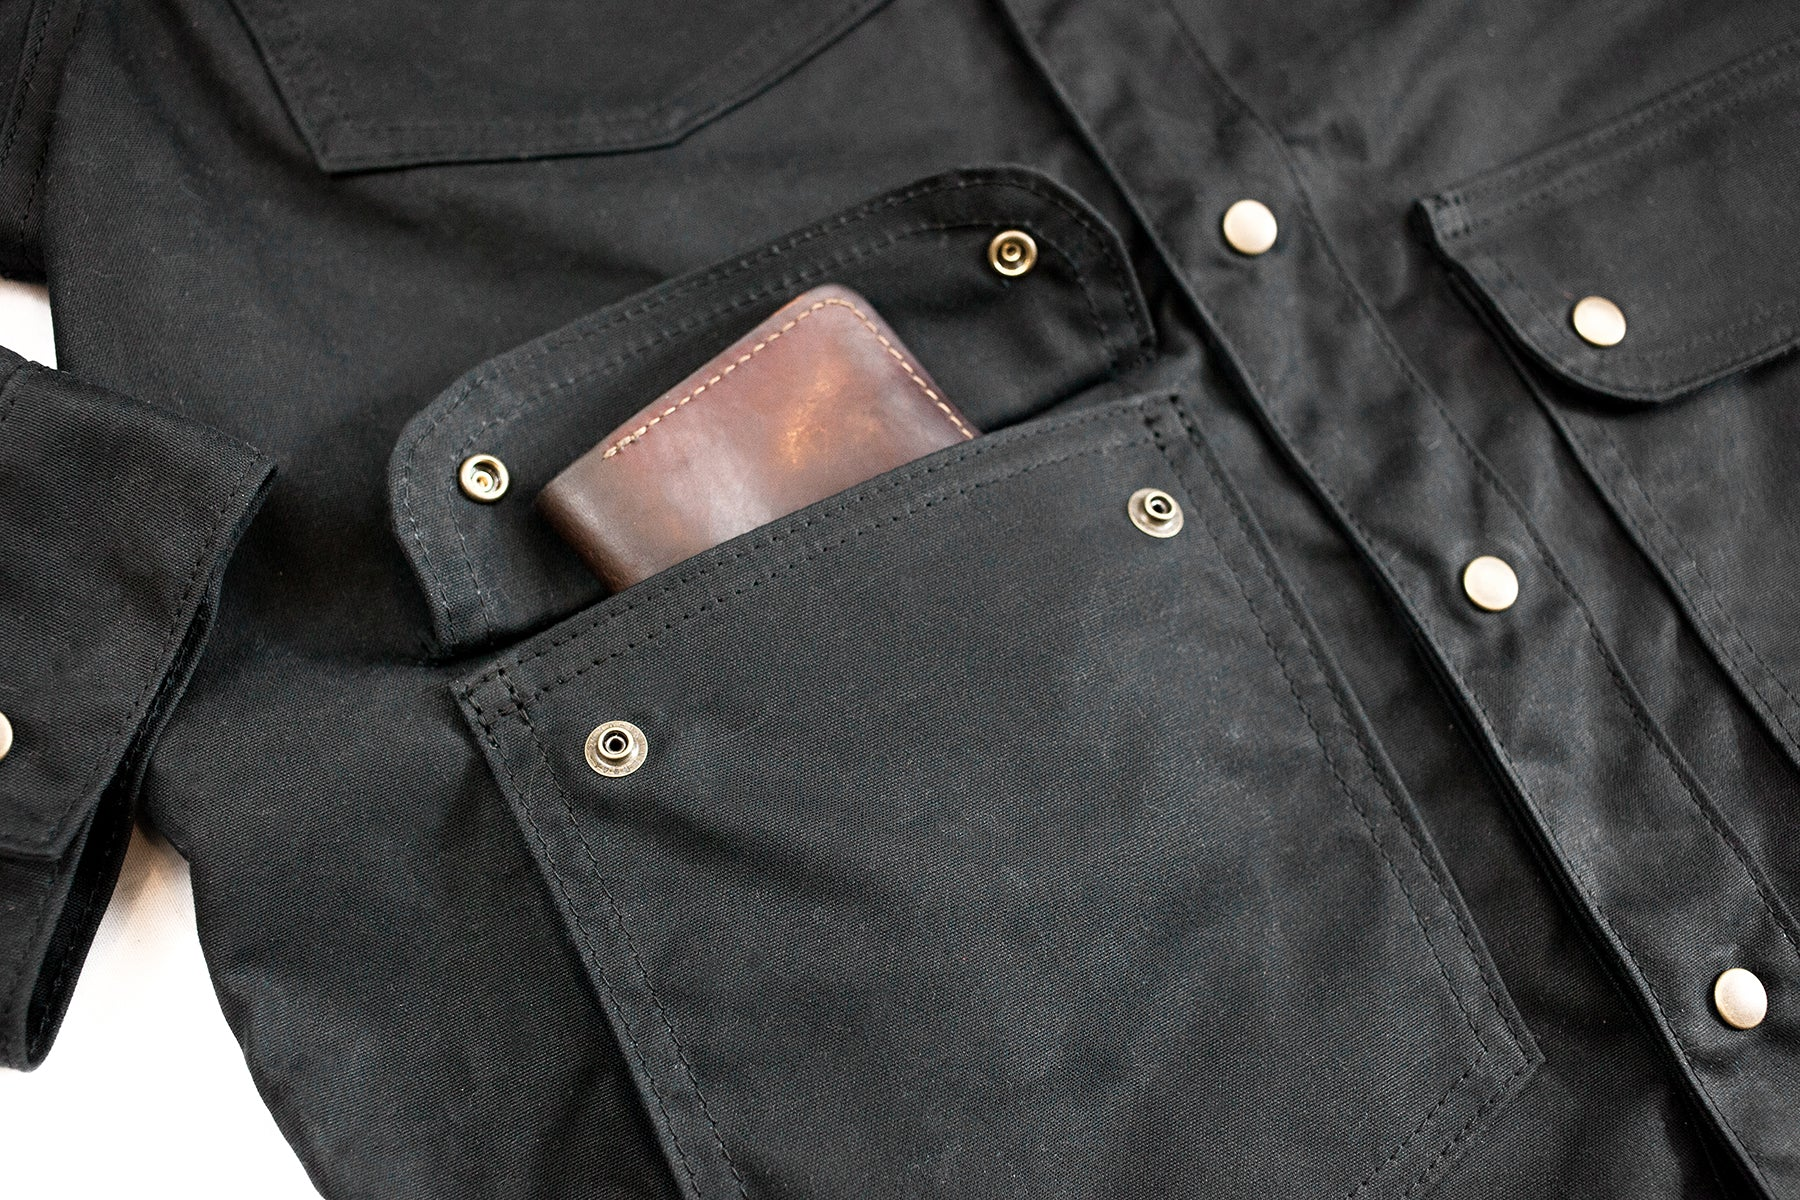 waxed canvas jacket, barn coat, chore coat, jacket, waxed canvas, made in usa, made to last, portland, oregon, waterproof, durable, tough, antique brass, best jacket, lumberjack, filson, red clouds jacket, red clouds collective